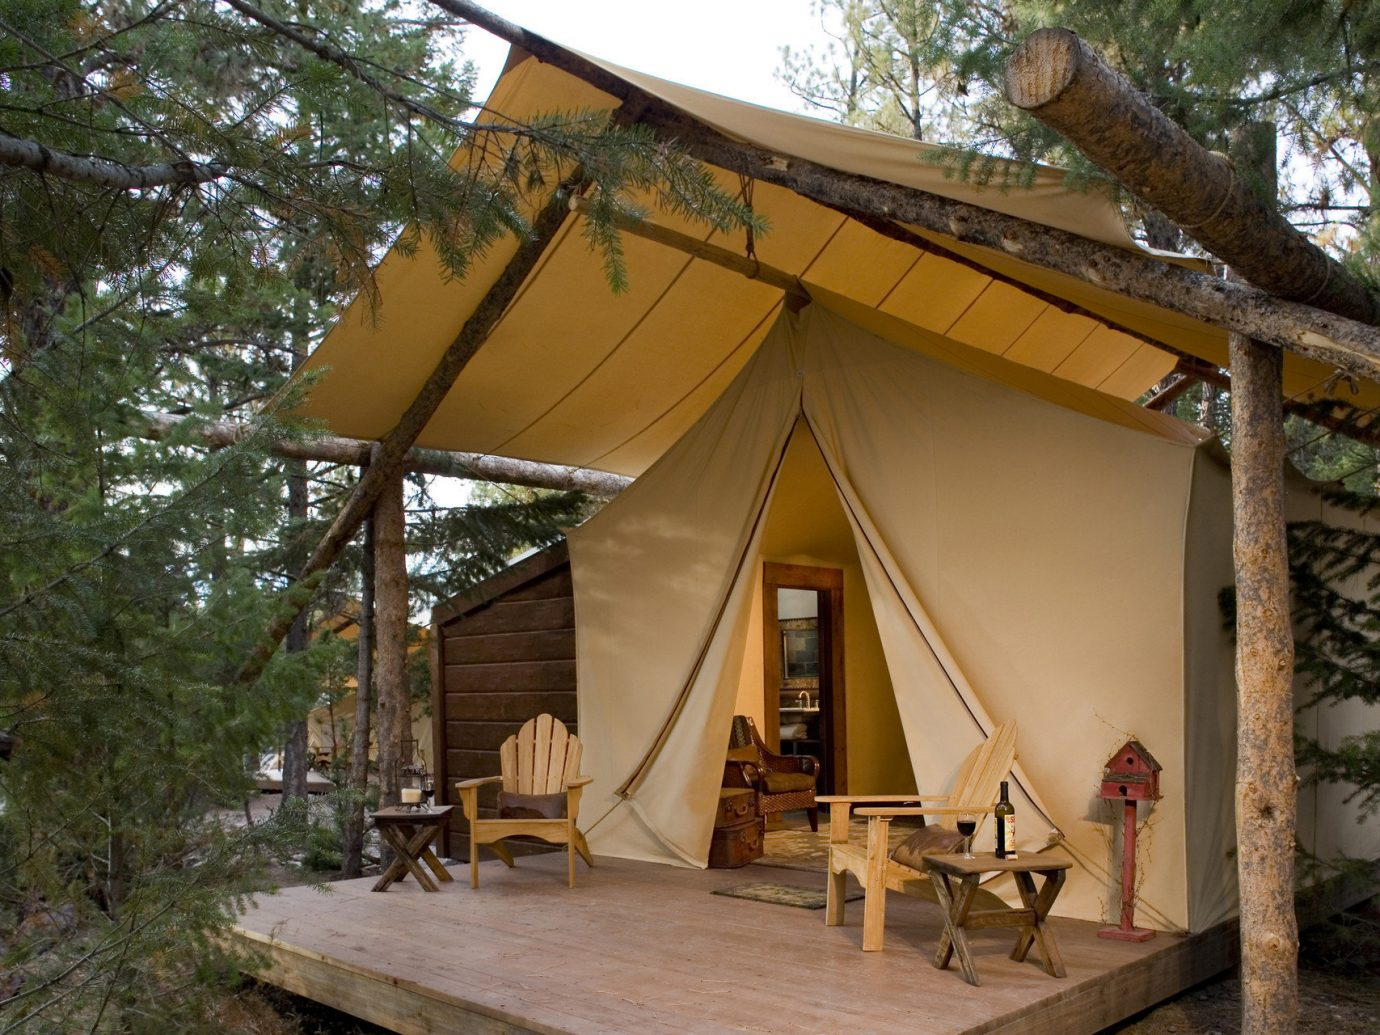 Exterior of a tent at The Resort at Paws Up